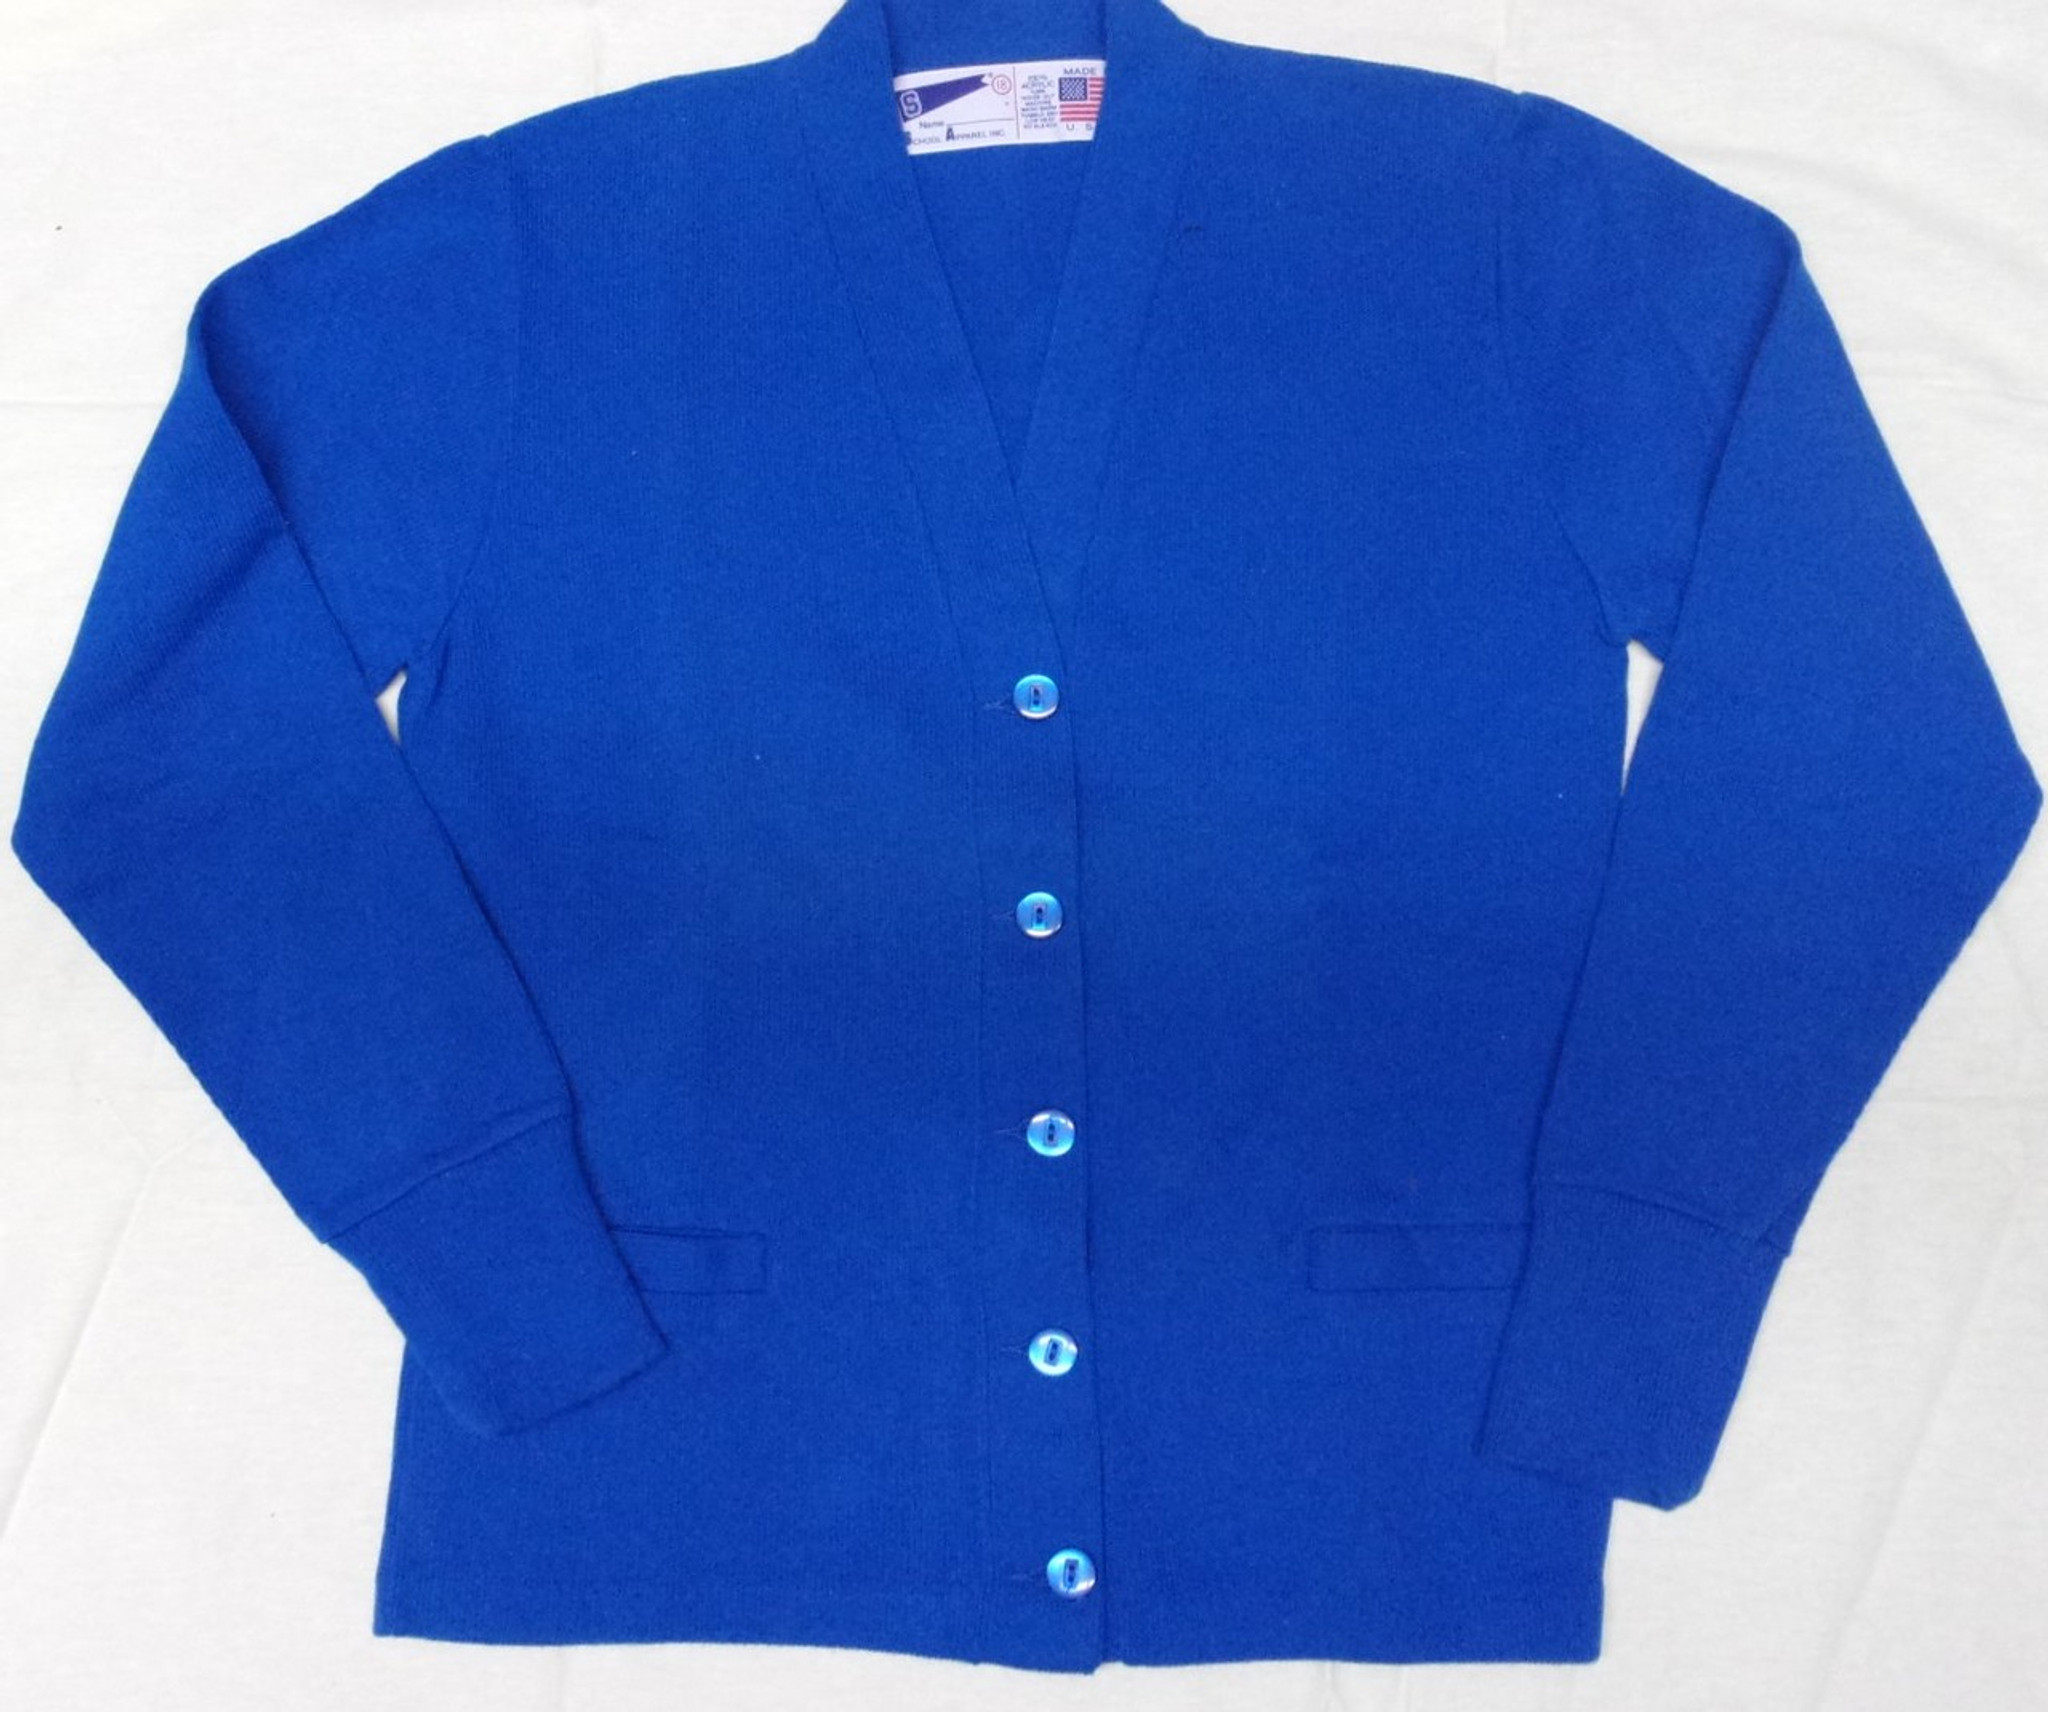 V-Neck Cardigan Sweater Royal Blue - Engelic Uniforms 38c5115b6